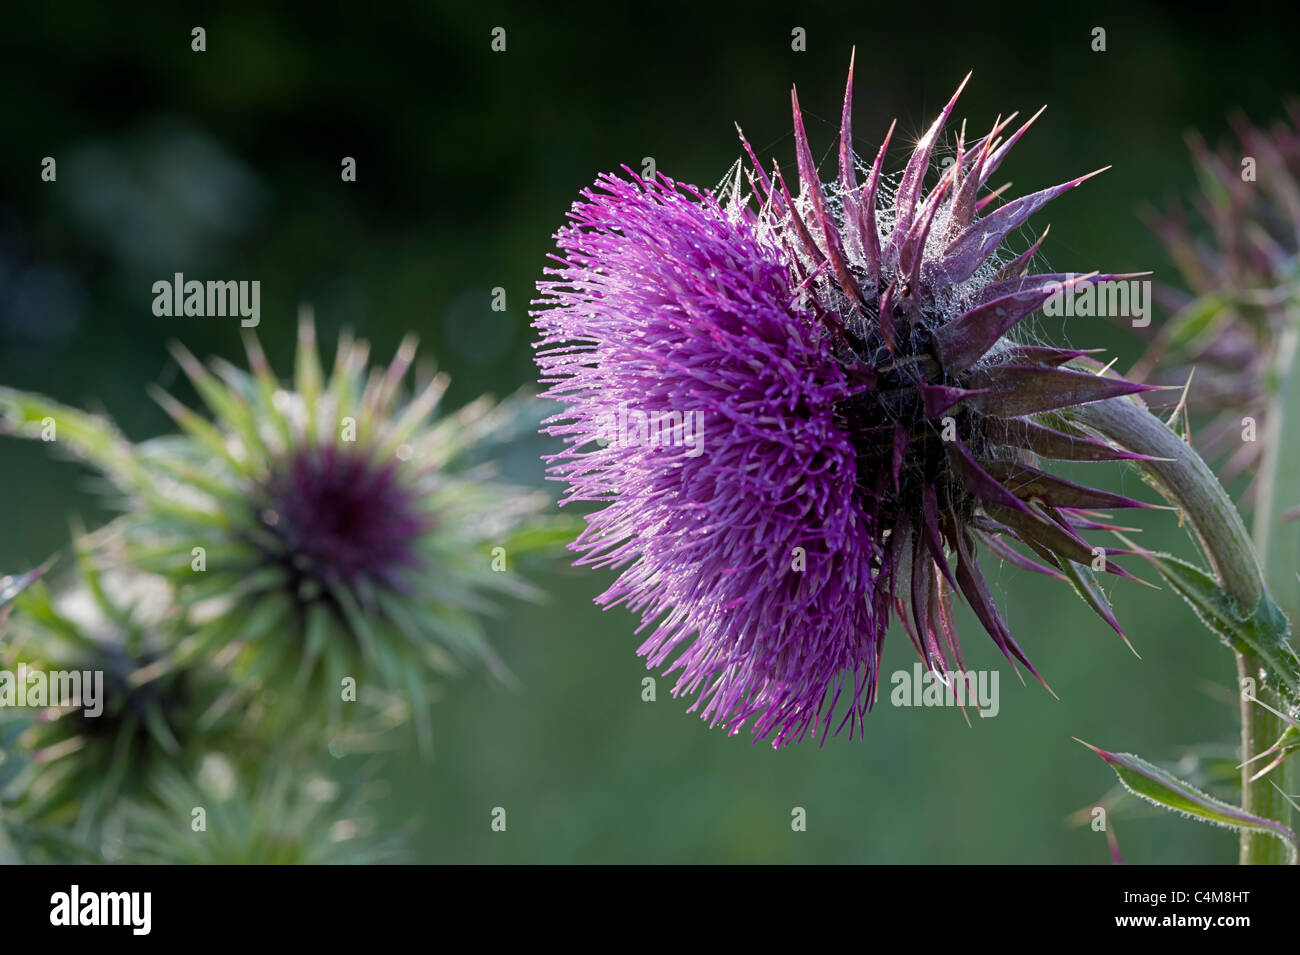 Musk thistle - Stock Image